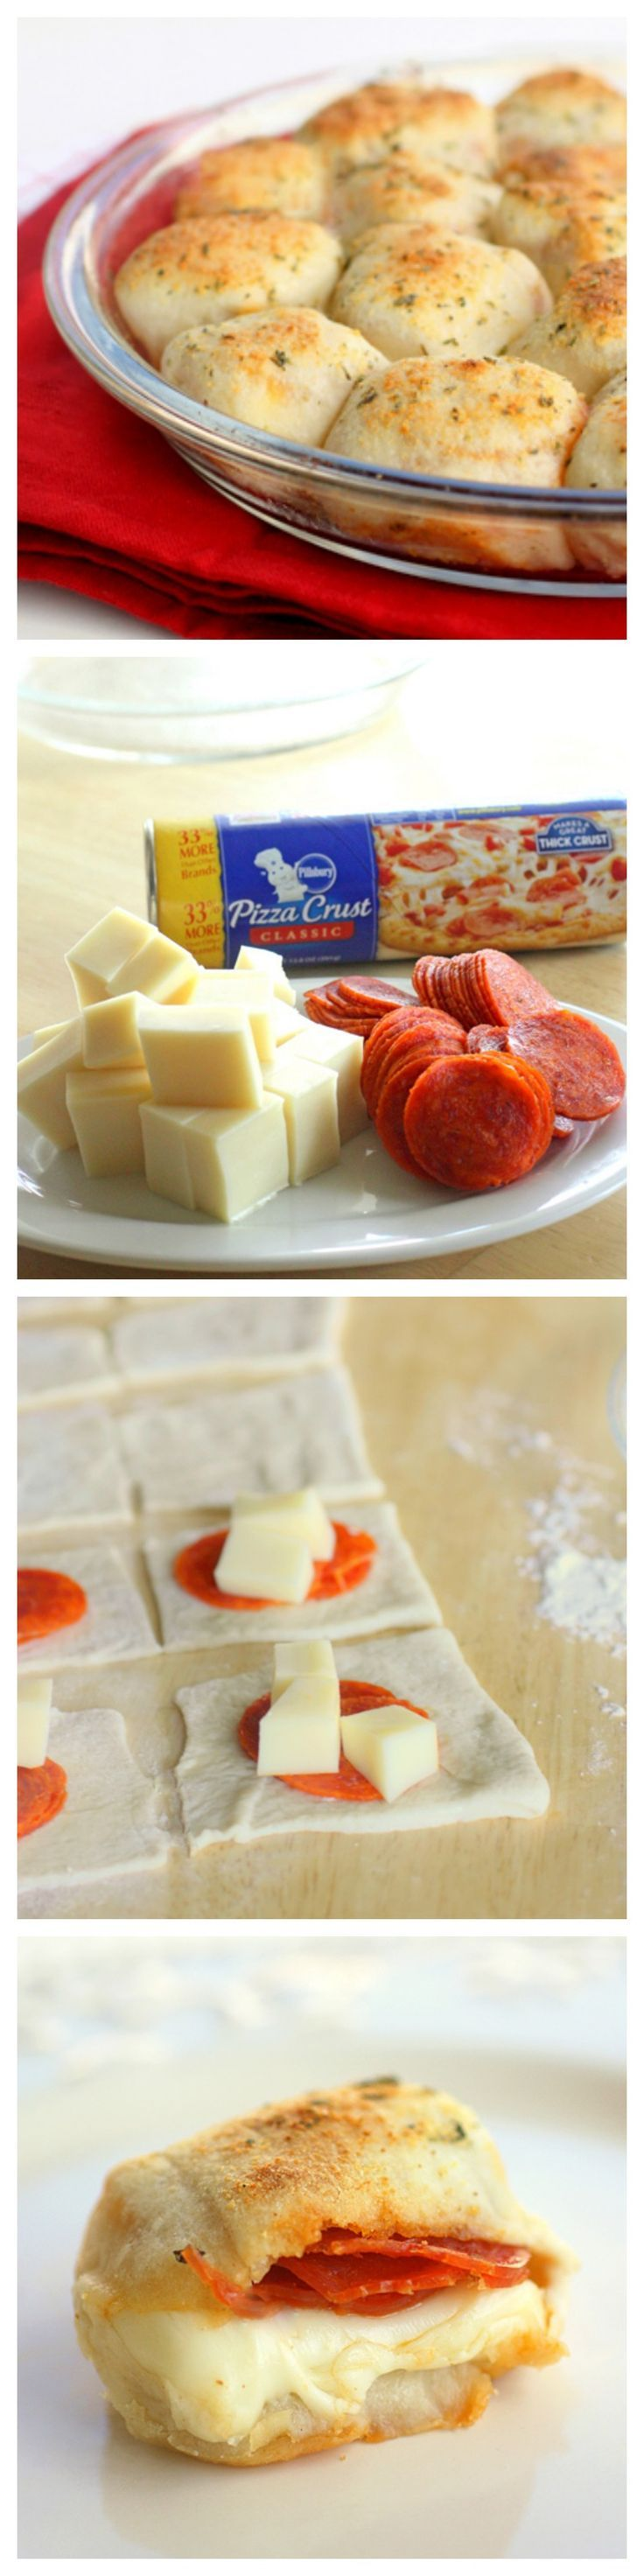 Stuffed Pizza Rolls ~ These can made as an appetizer, lunch, or even dinner for your family in less than 30 minutes. These rolls are a great way to get your kids involved in the kitchen.